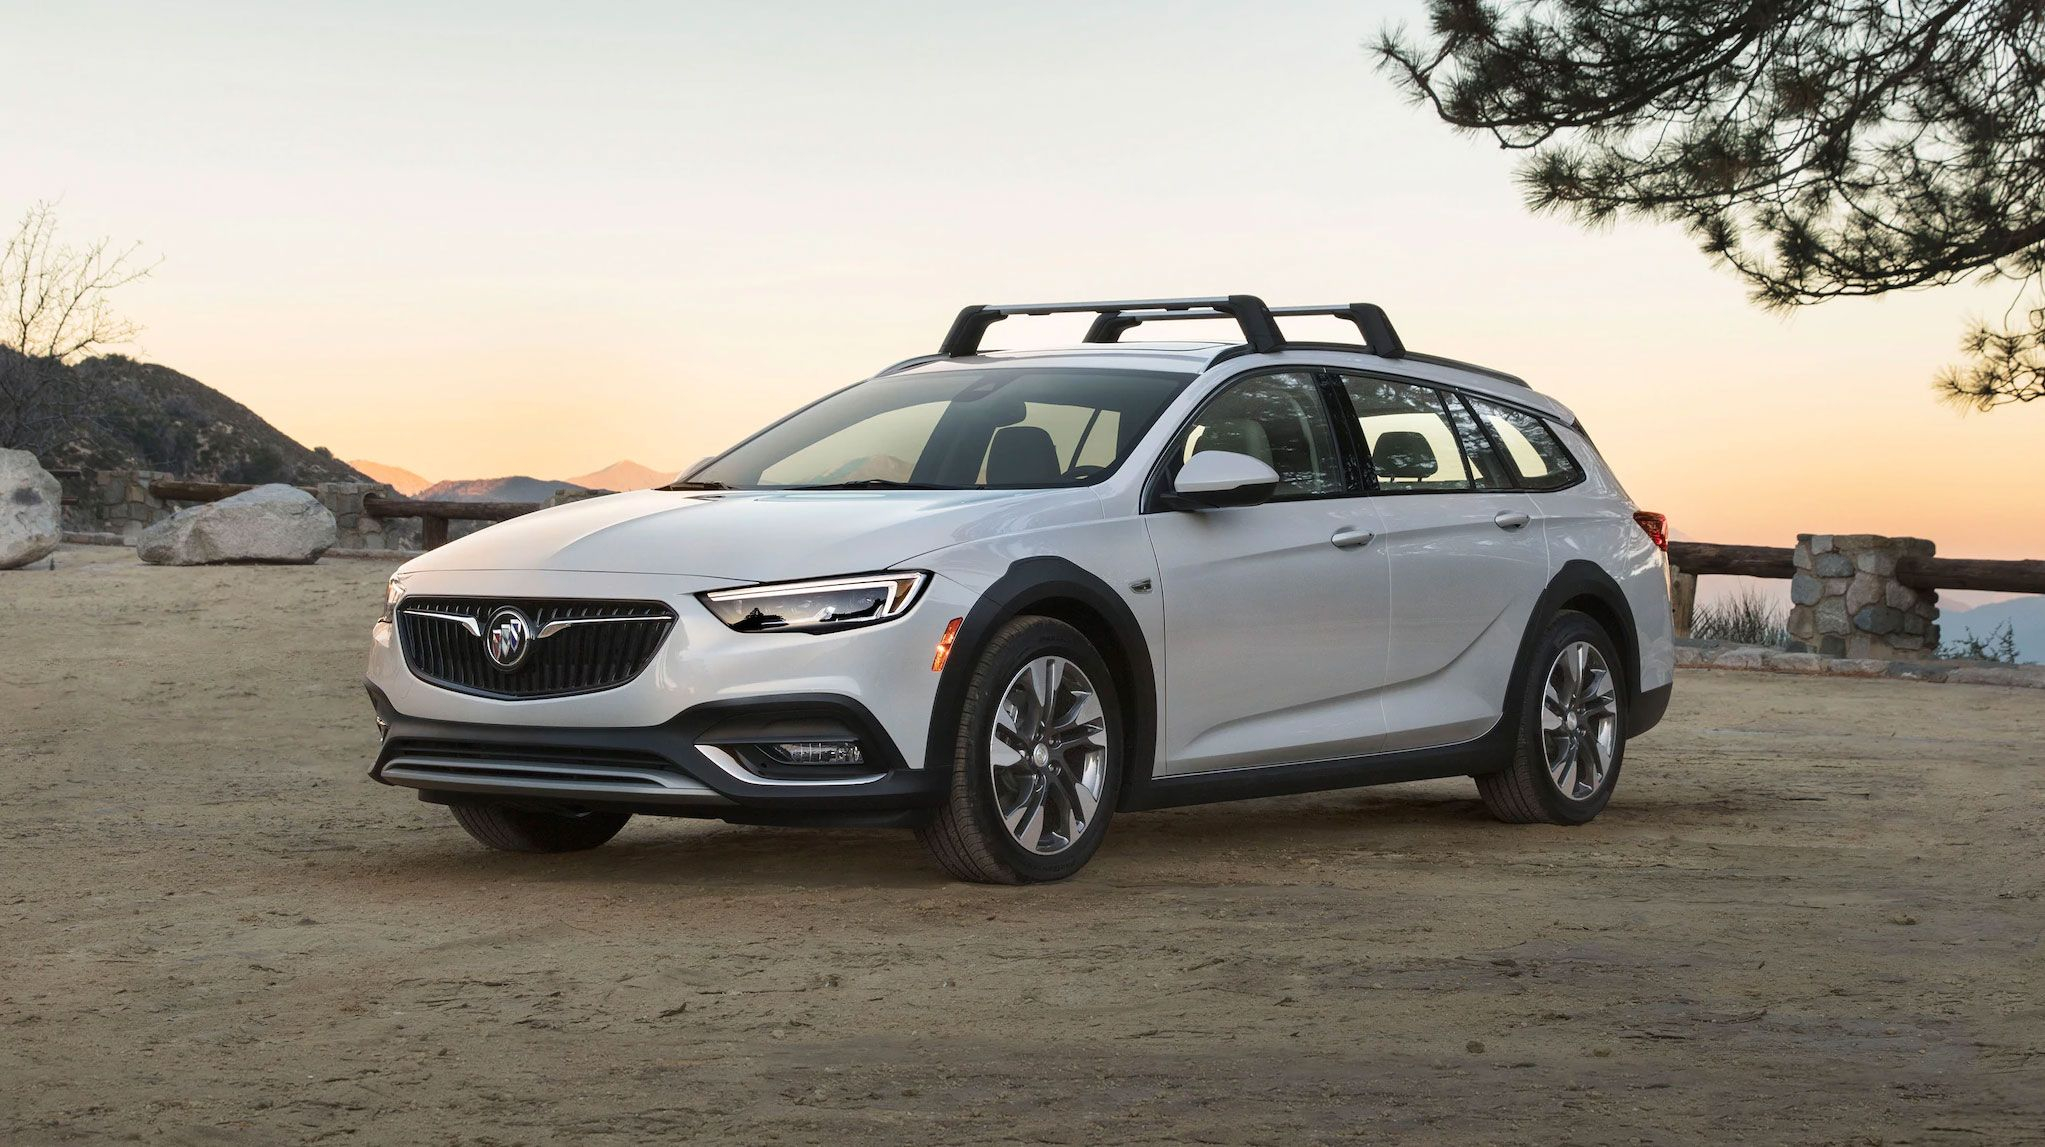 2020 Buick Regal Tourx Review, Pricing, And Specs 2021 Buick Regal Tourx Review, Specs, 0-60